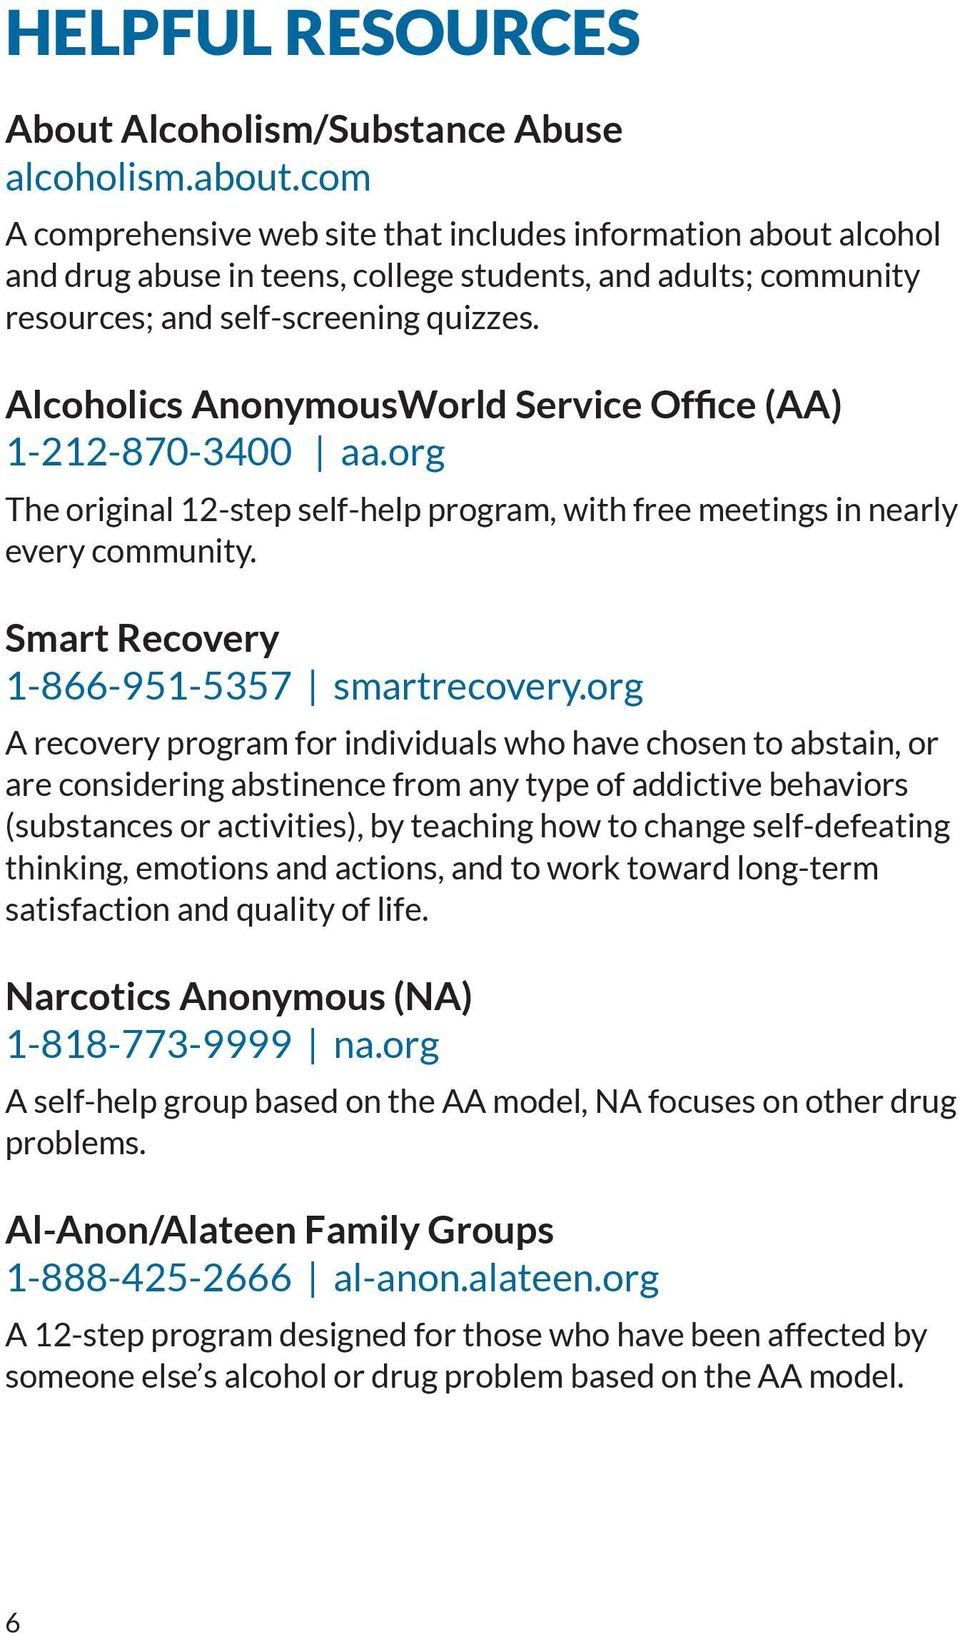 Alcoholics AnonymousWorld Service Office (AA) 1-212-870-3400 aa.org The original 12-step self-help program, with free meetings in nearly every community. Smart Recovery 1-866-951-5357 smartrecovery.